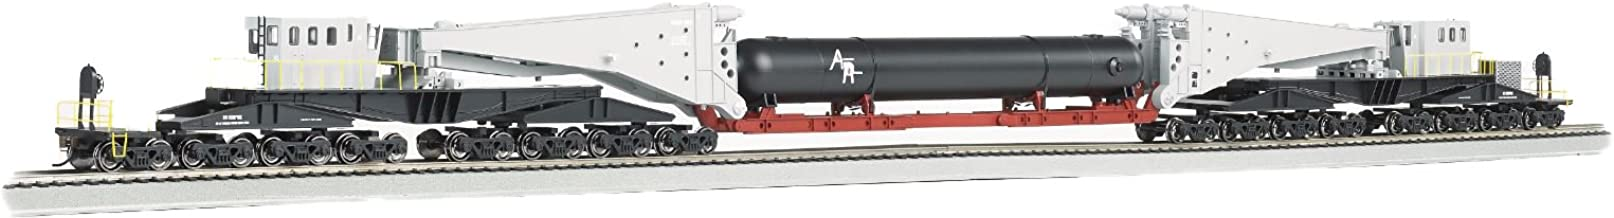 Bachmann Industries 380 Ton Schnabel Retort/Cylinder Load Ho Scale Freight Car, Gray/Black